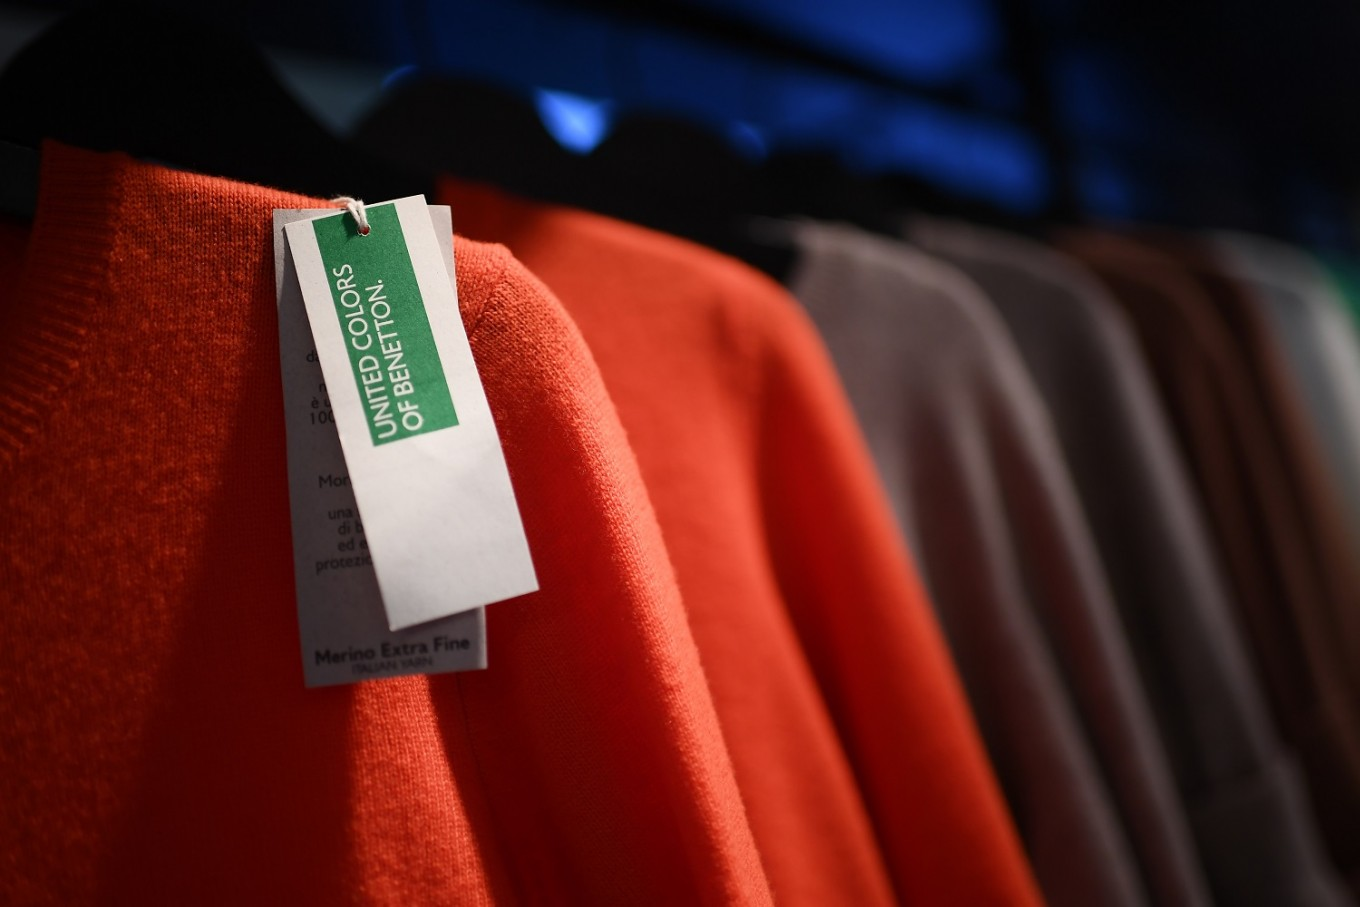 Luciano Benetton to return to clothing giant's helm at 82